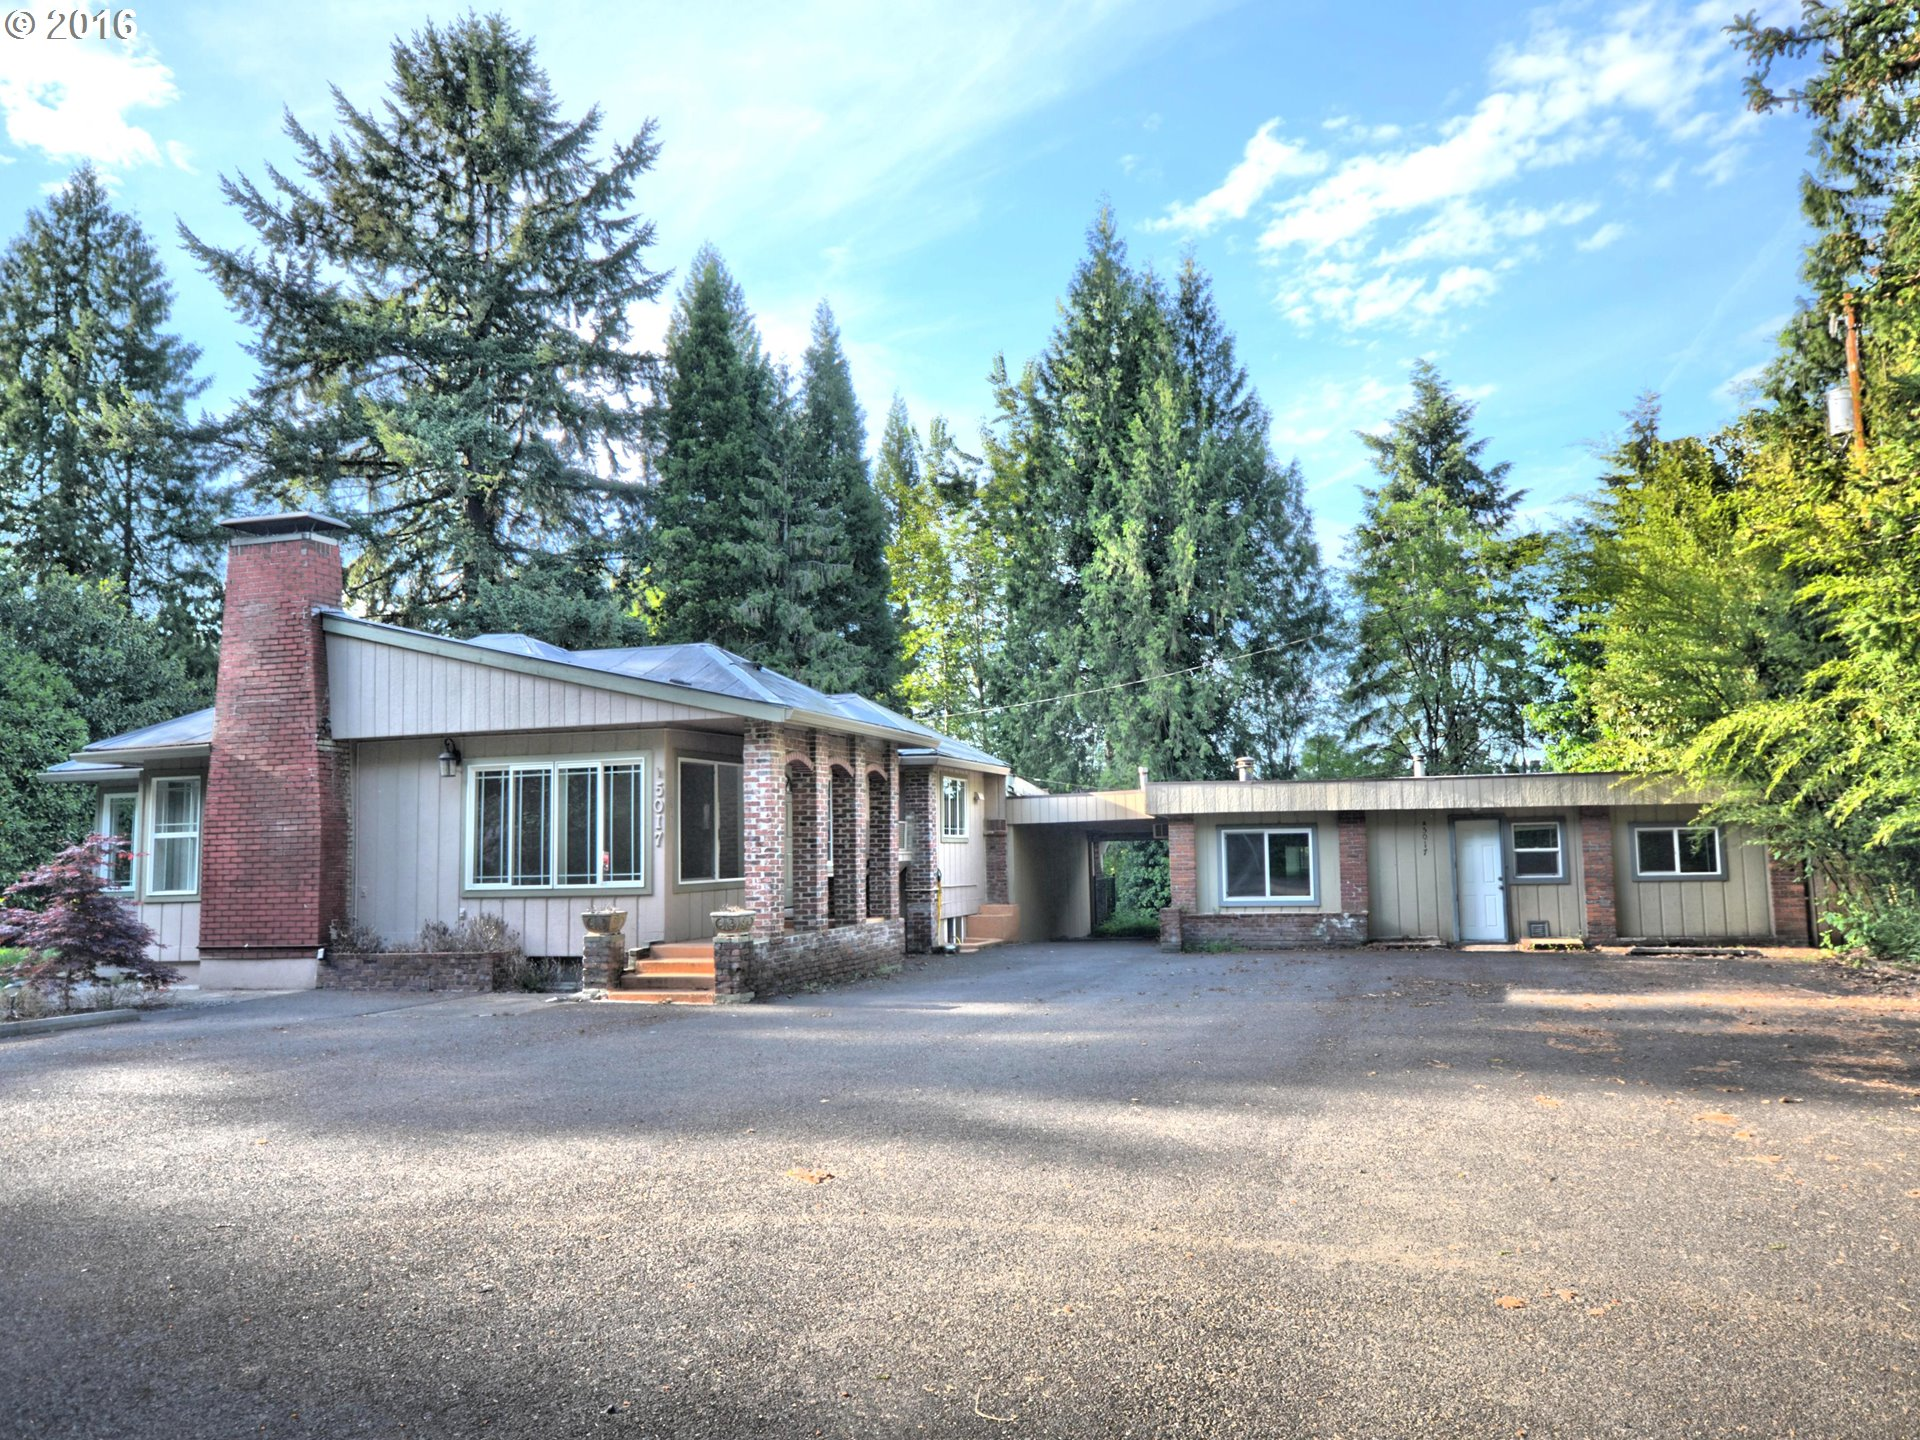 5017 SE ALDERCREST RD, Milwaukie OR 97222